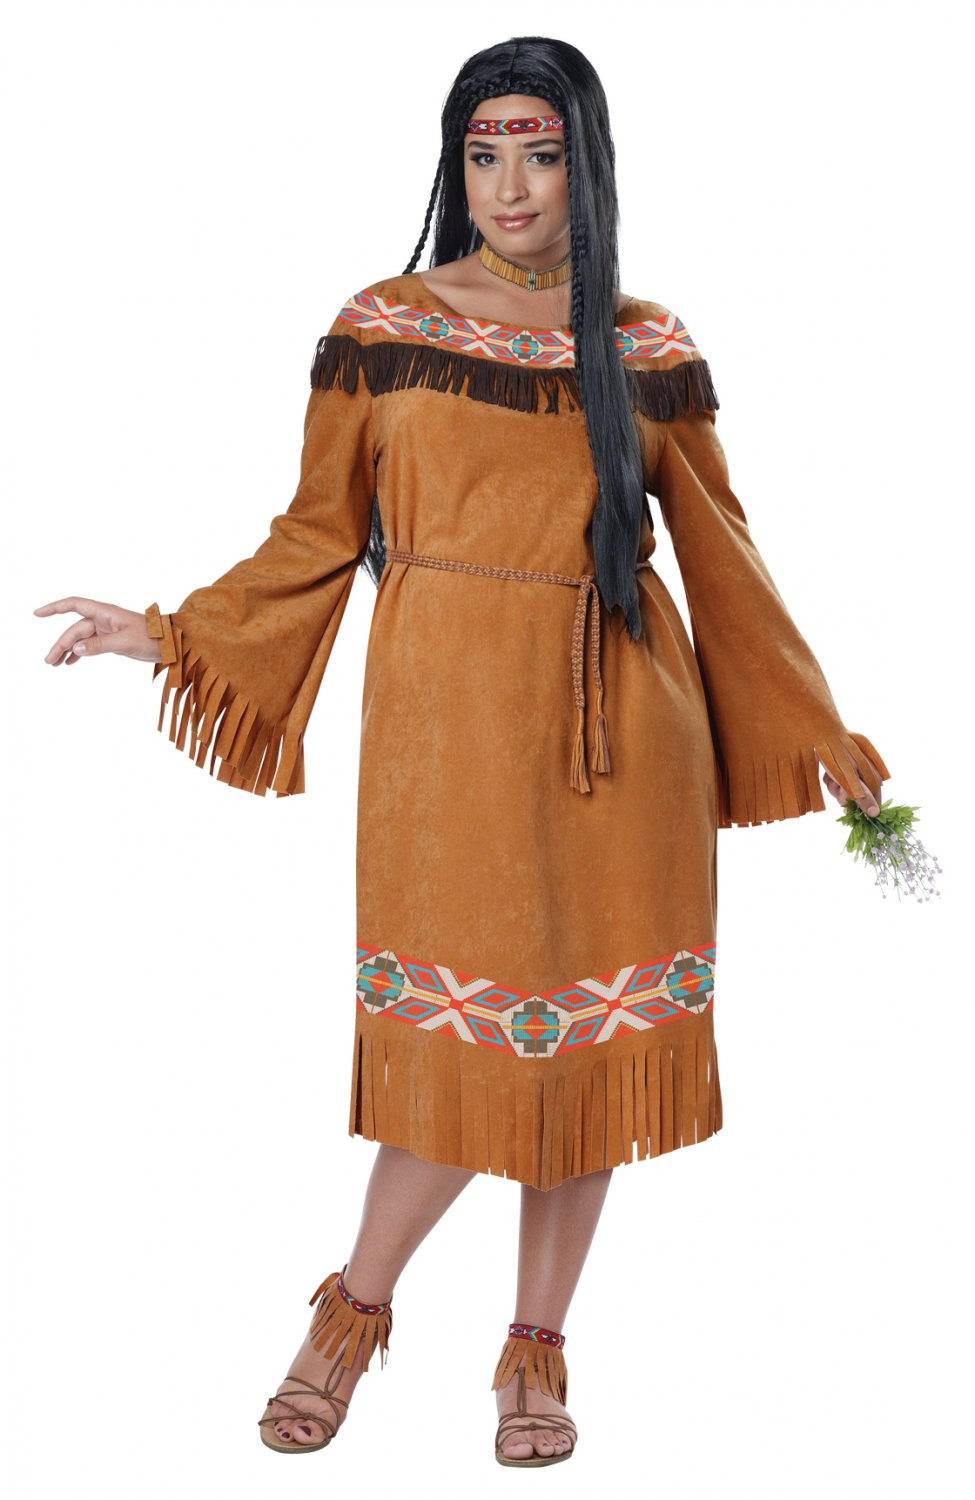 Thanksgiving Pocahontas Classic Indian Maiden Plus Size Adult Costume: 2X-Large #1754